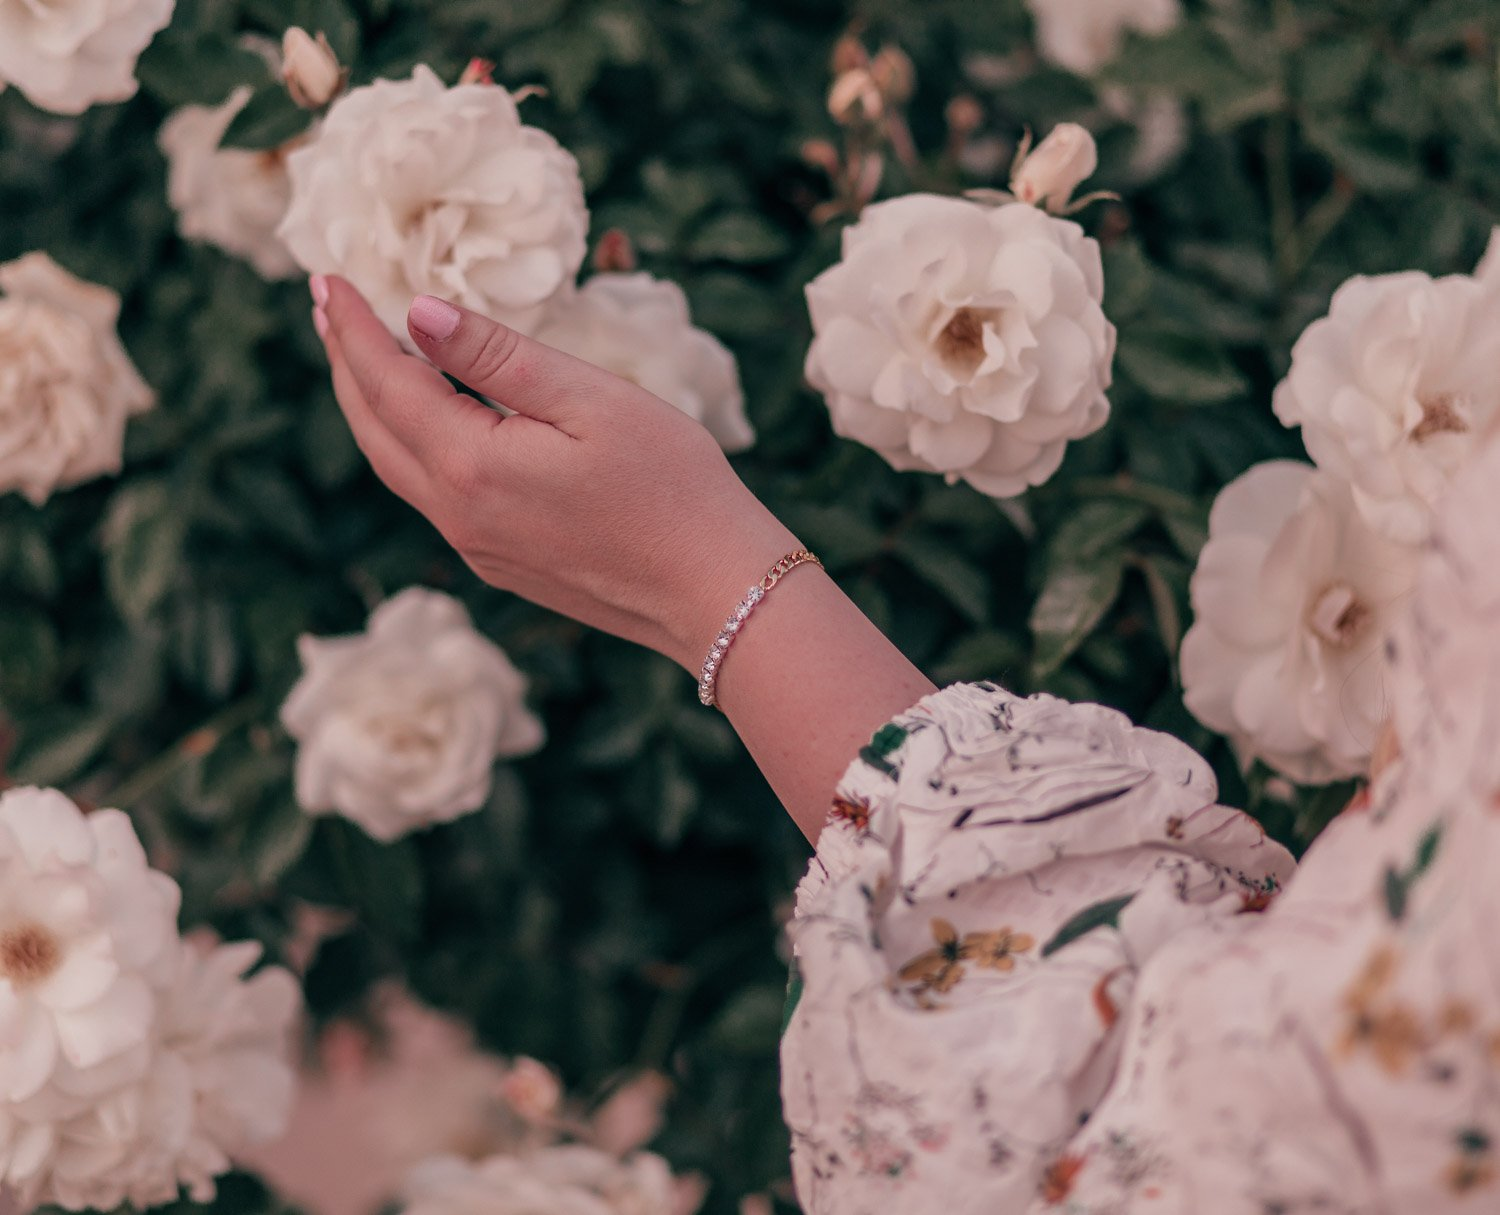 Feminine fashion blogger Elizabeth Hugen of Lizzie in Lace shares her spring 2021 bucket list along with a girly spring outfit idea including this floral Chicwish dress and rhinestone Gorjana bracelet